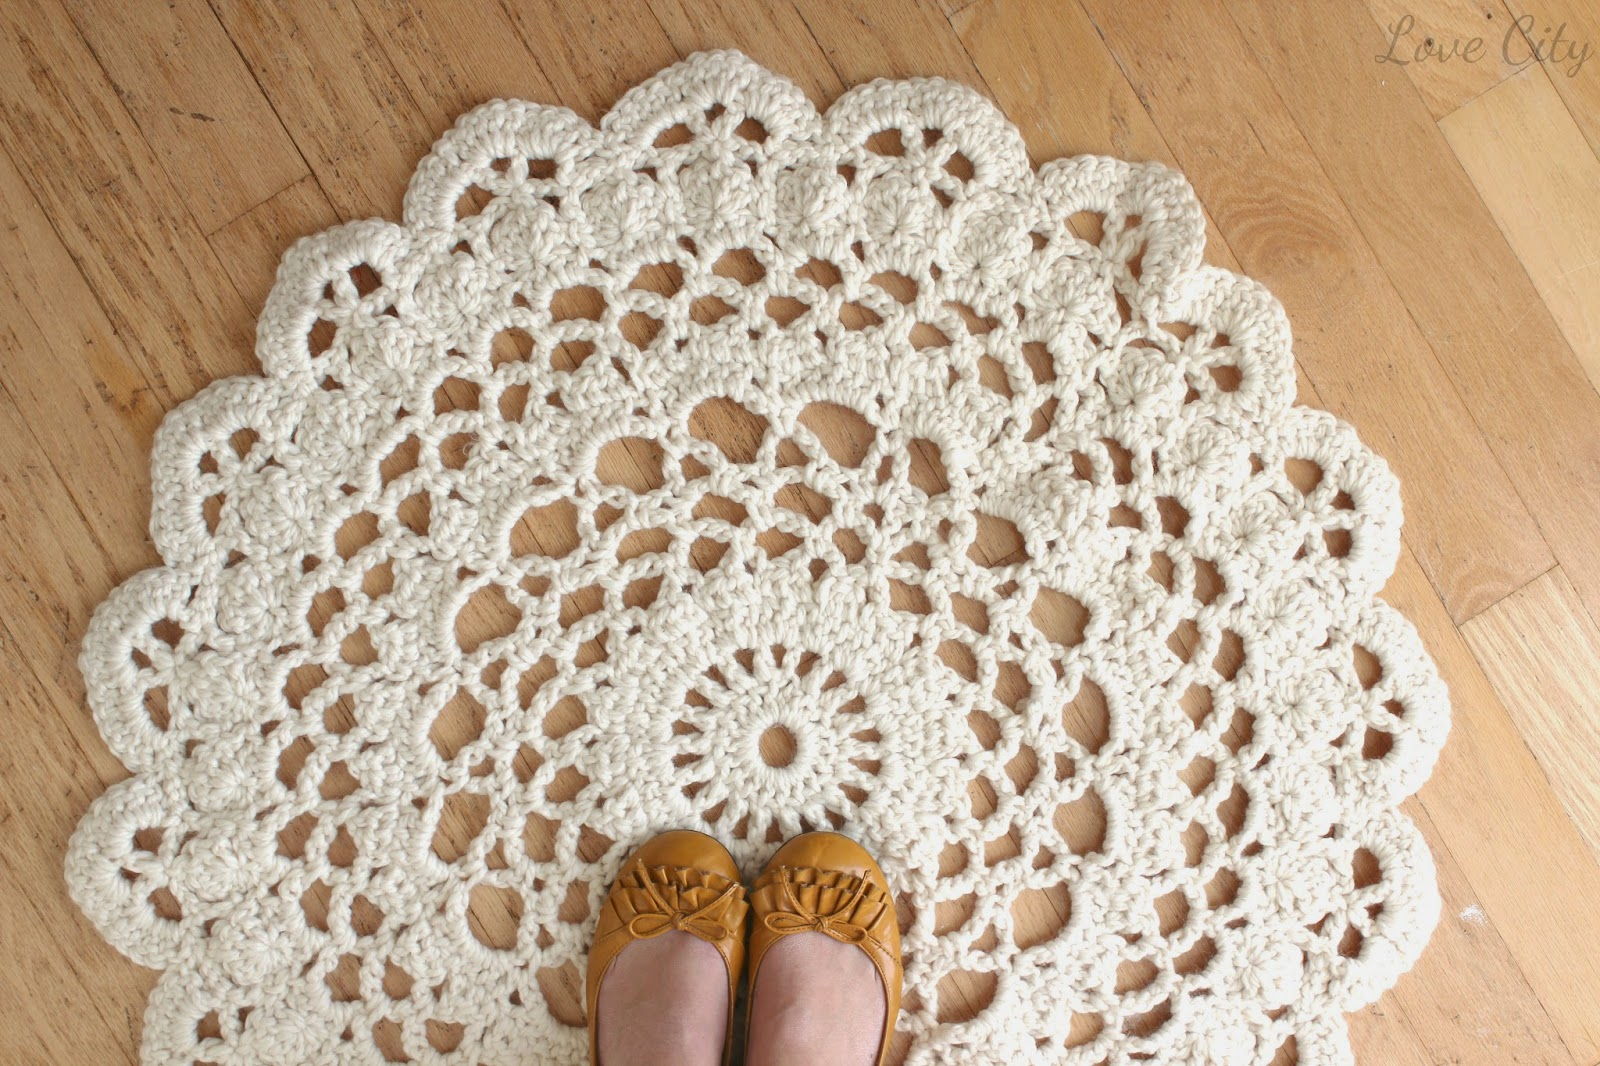 Crocheting Rugs : ... long time. It is the Giant Crochet Doily Rug by Creative Jewish Mom